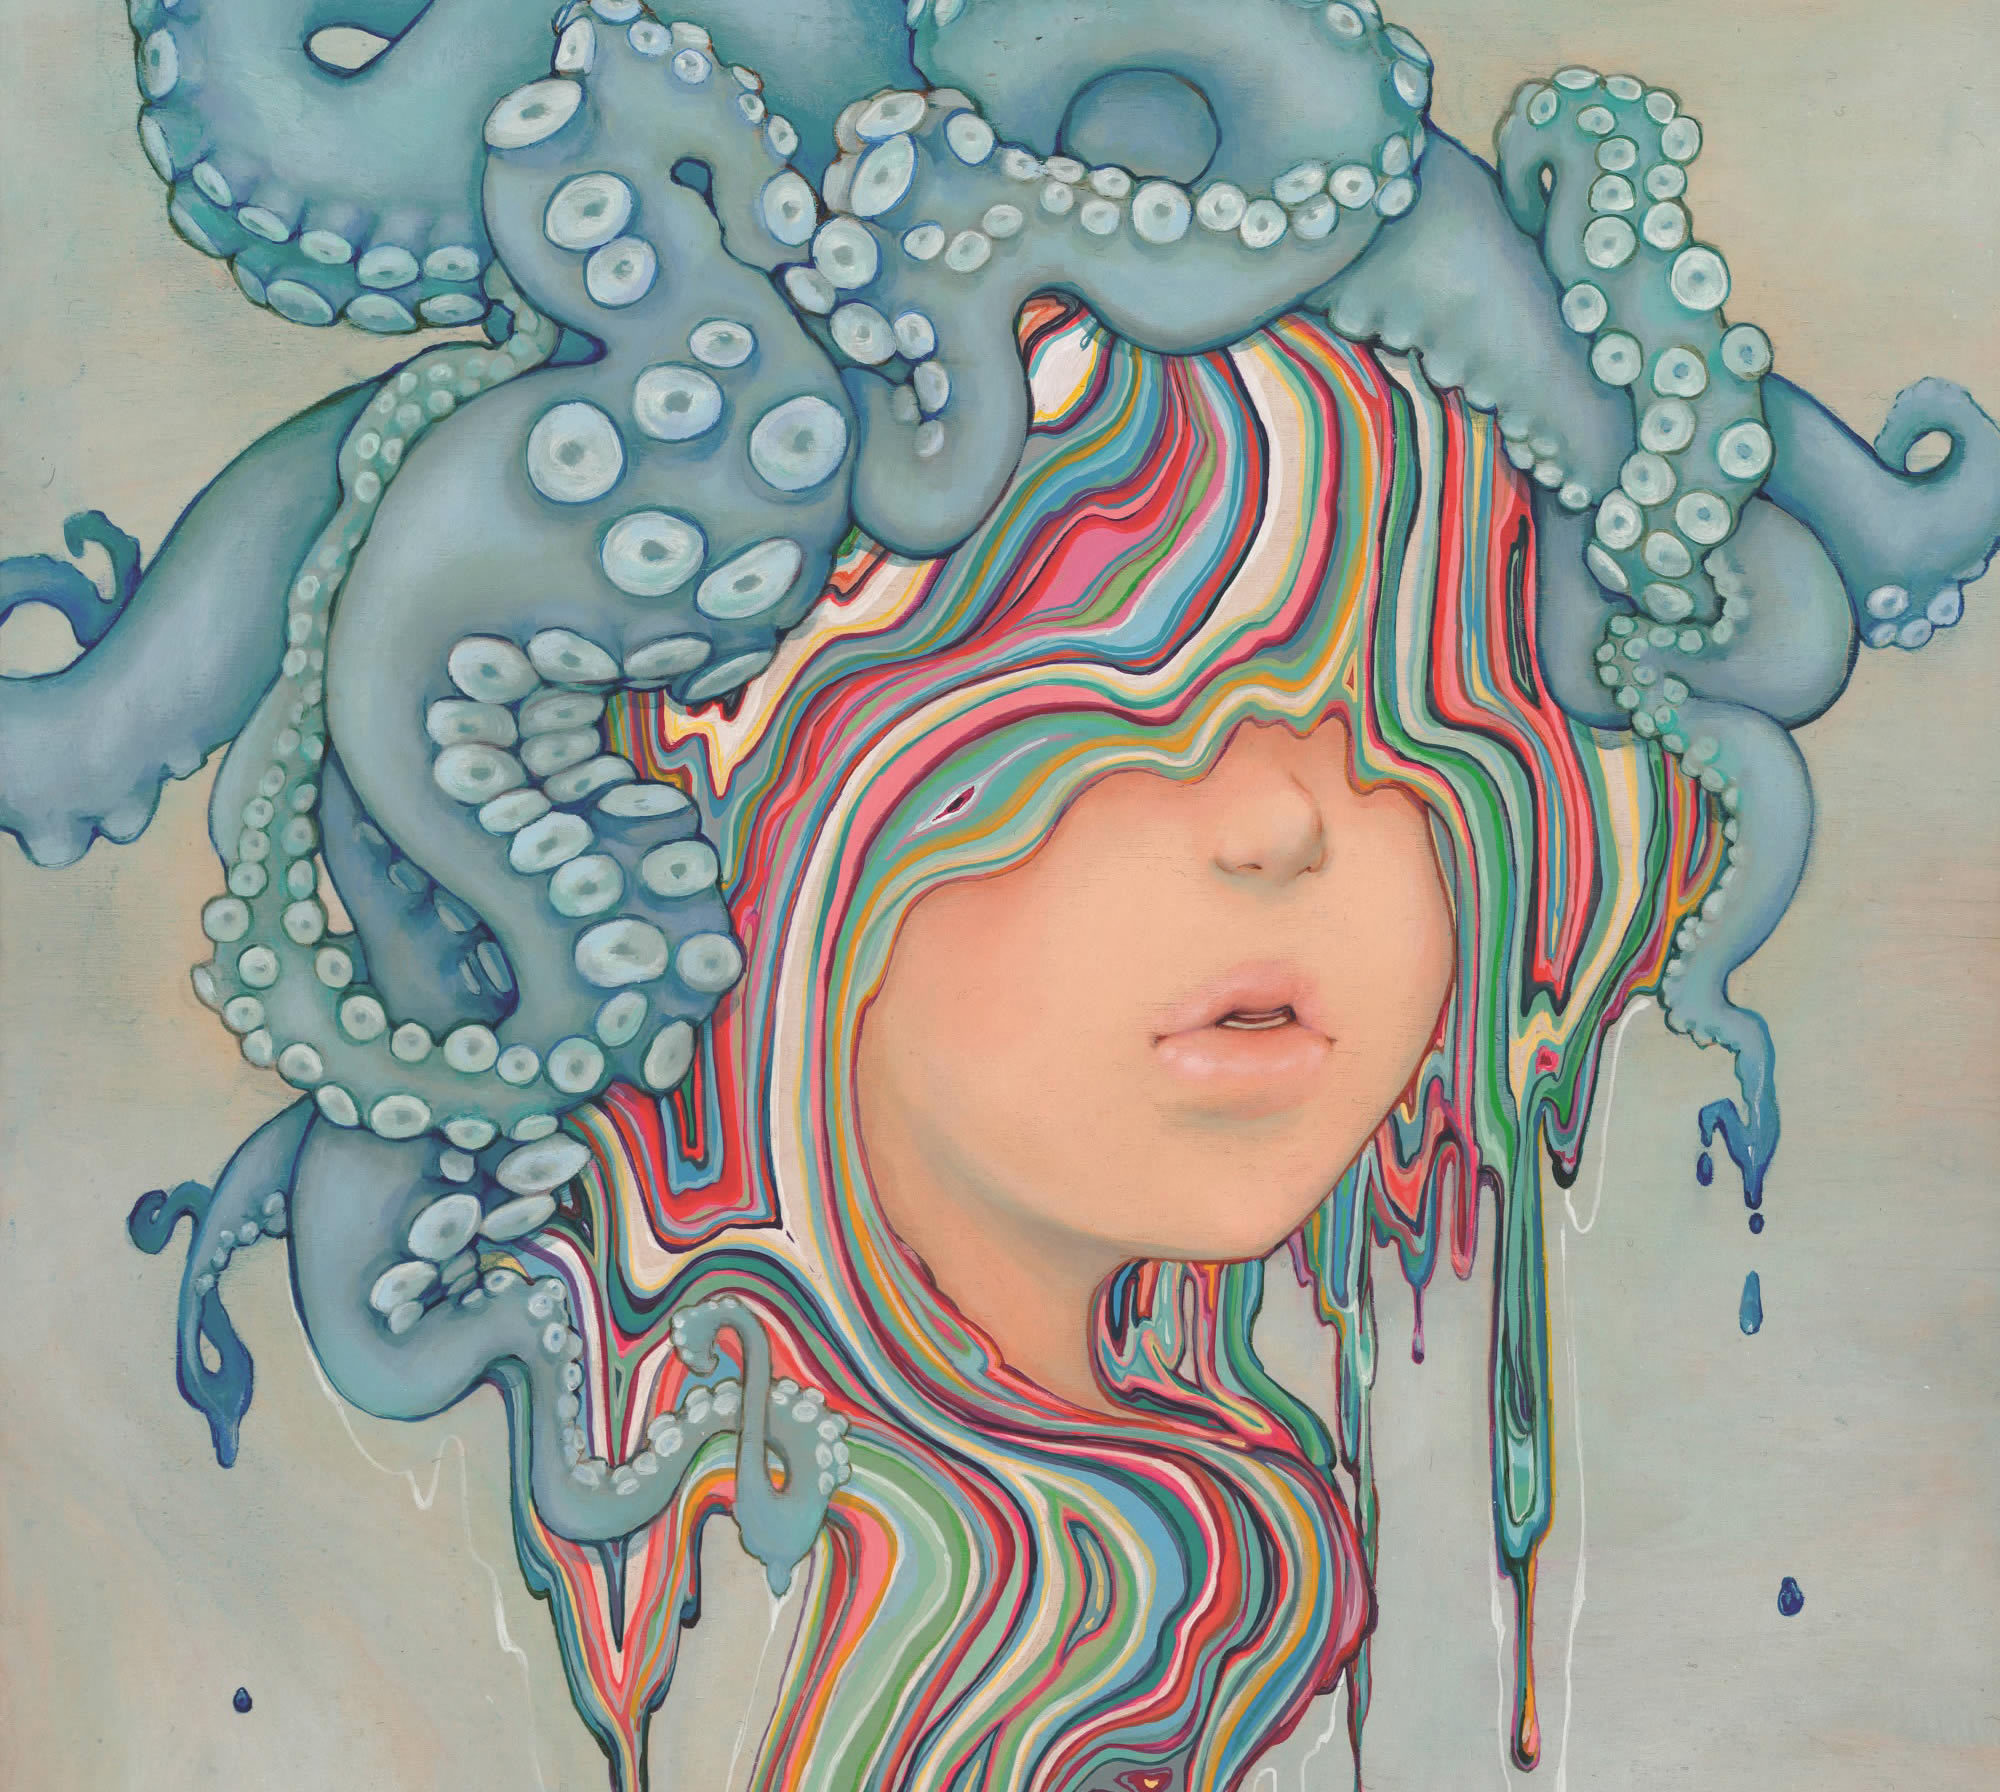 Soulful-Eyed Girls that Melt Rainbows by Camilla d'Errico